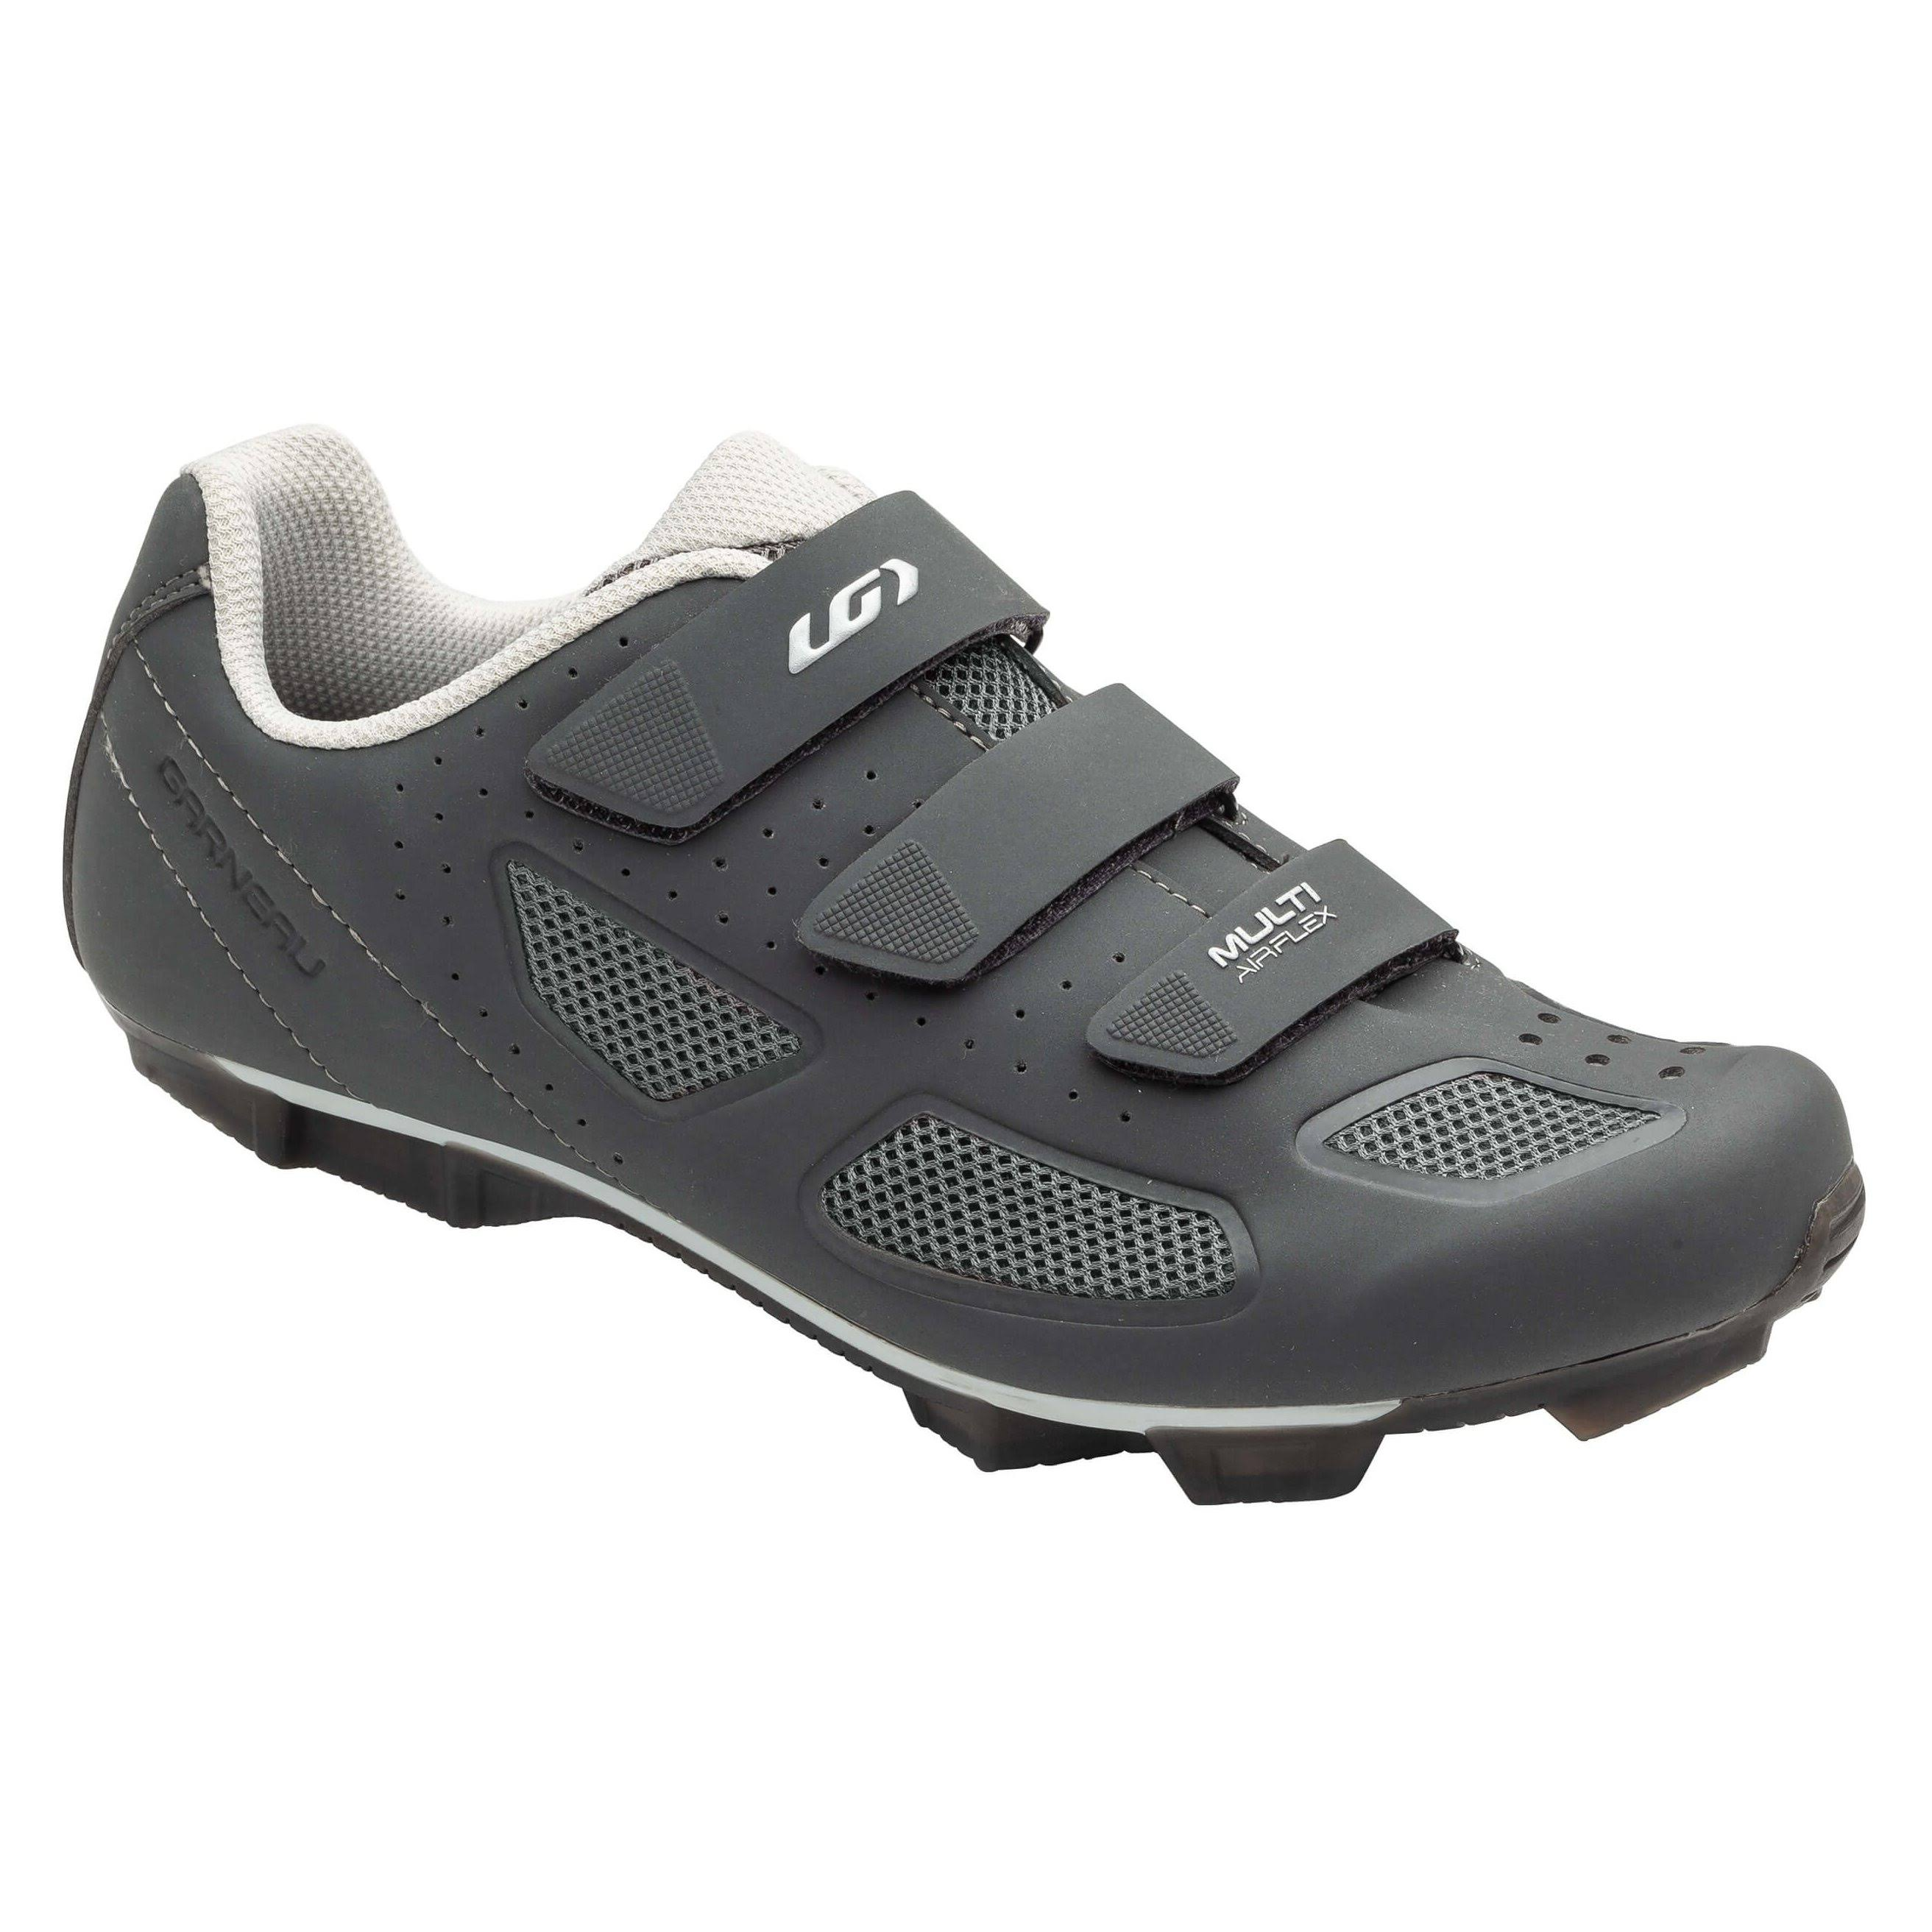 Garneau Multi Air Flex II Cycling Shoes